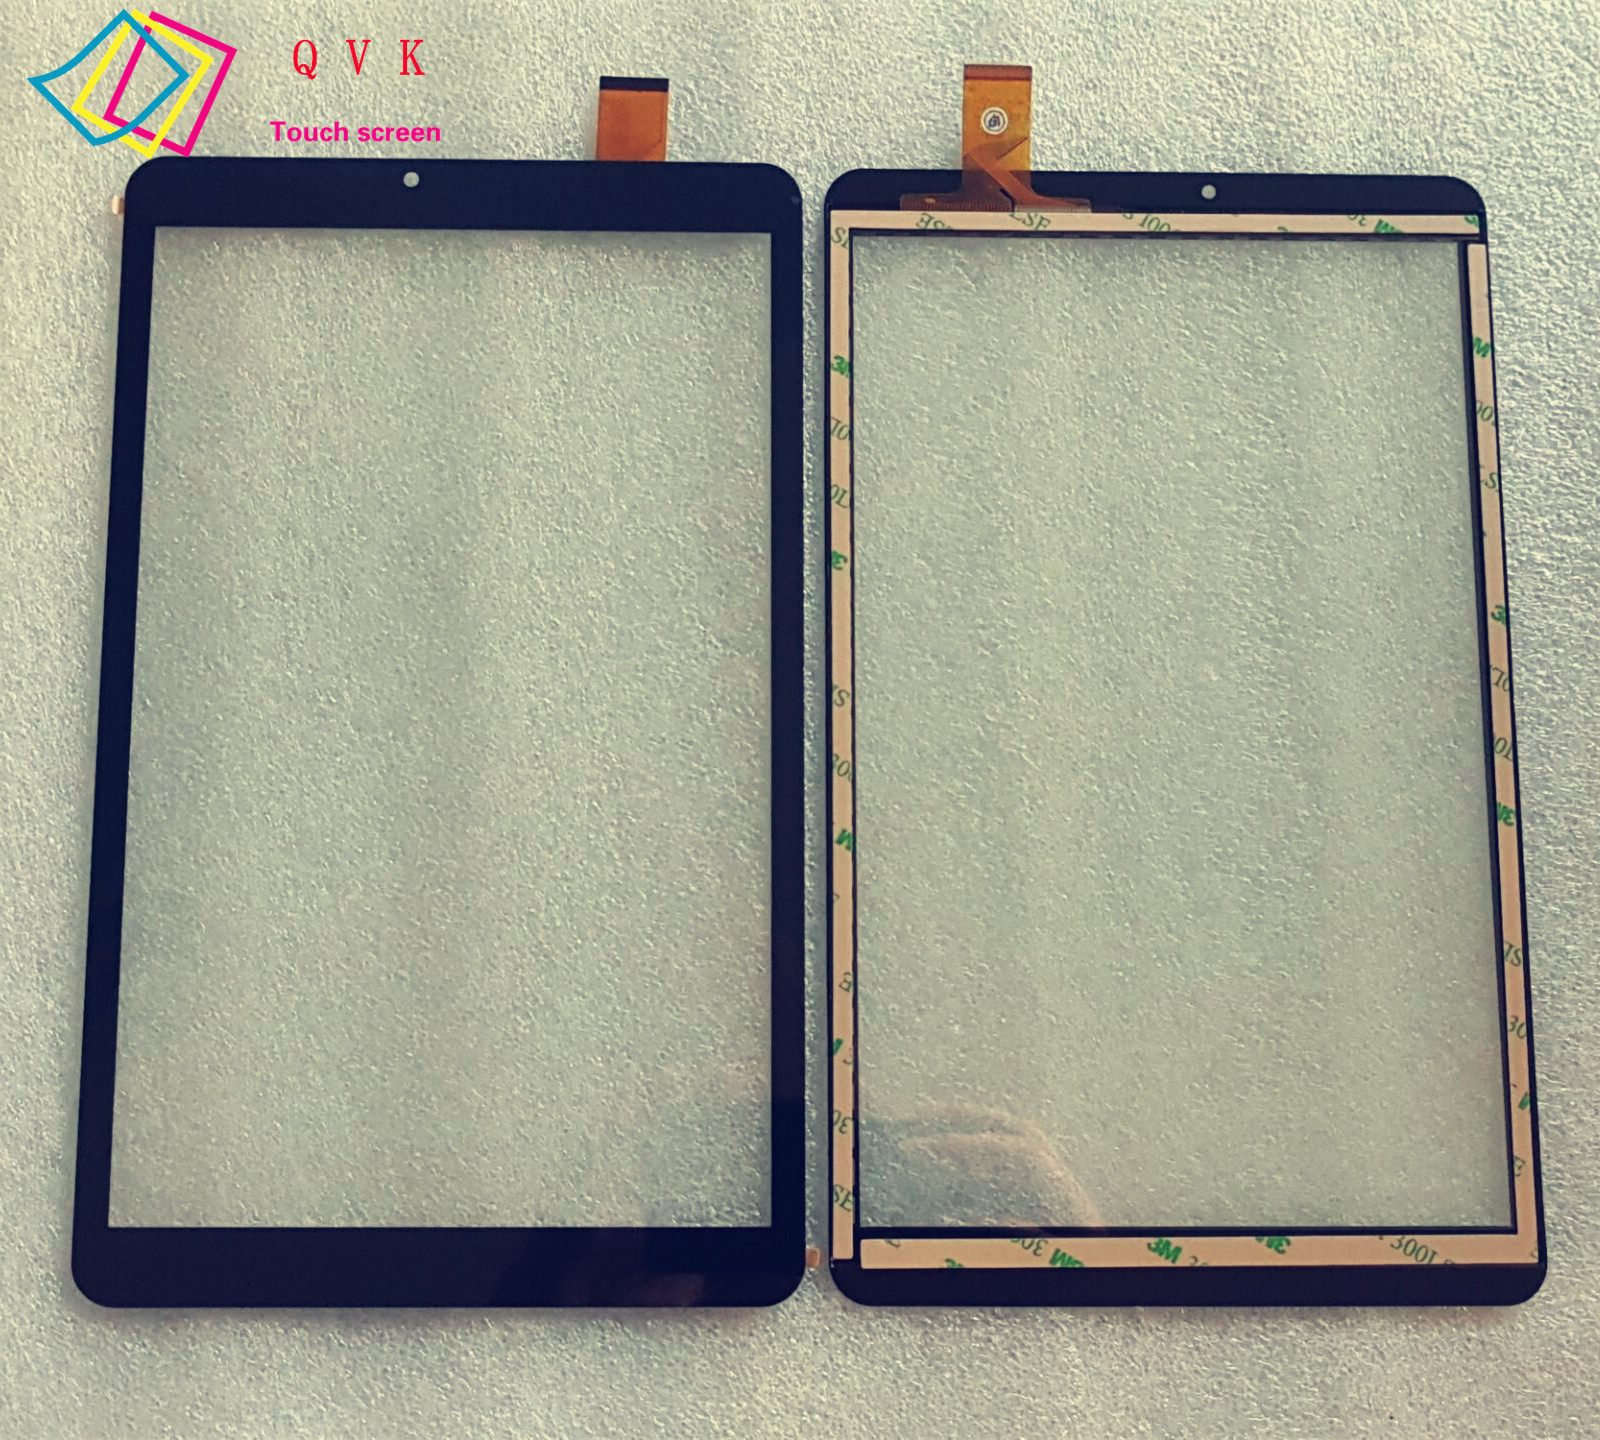 Black 10.1 Inch for Irbis TZ101 tablet pc capacitive touch screen glass digitizer panel Free shipping black and white for irbis tz191 tz 191 tablet capacitive touch screen 10 1 inch pc touch panel digitizer glass mid sensor